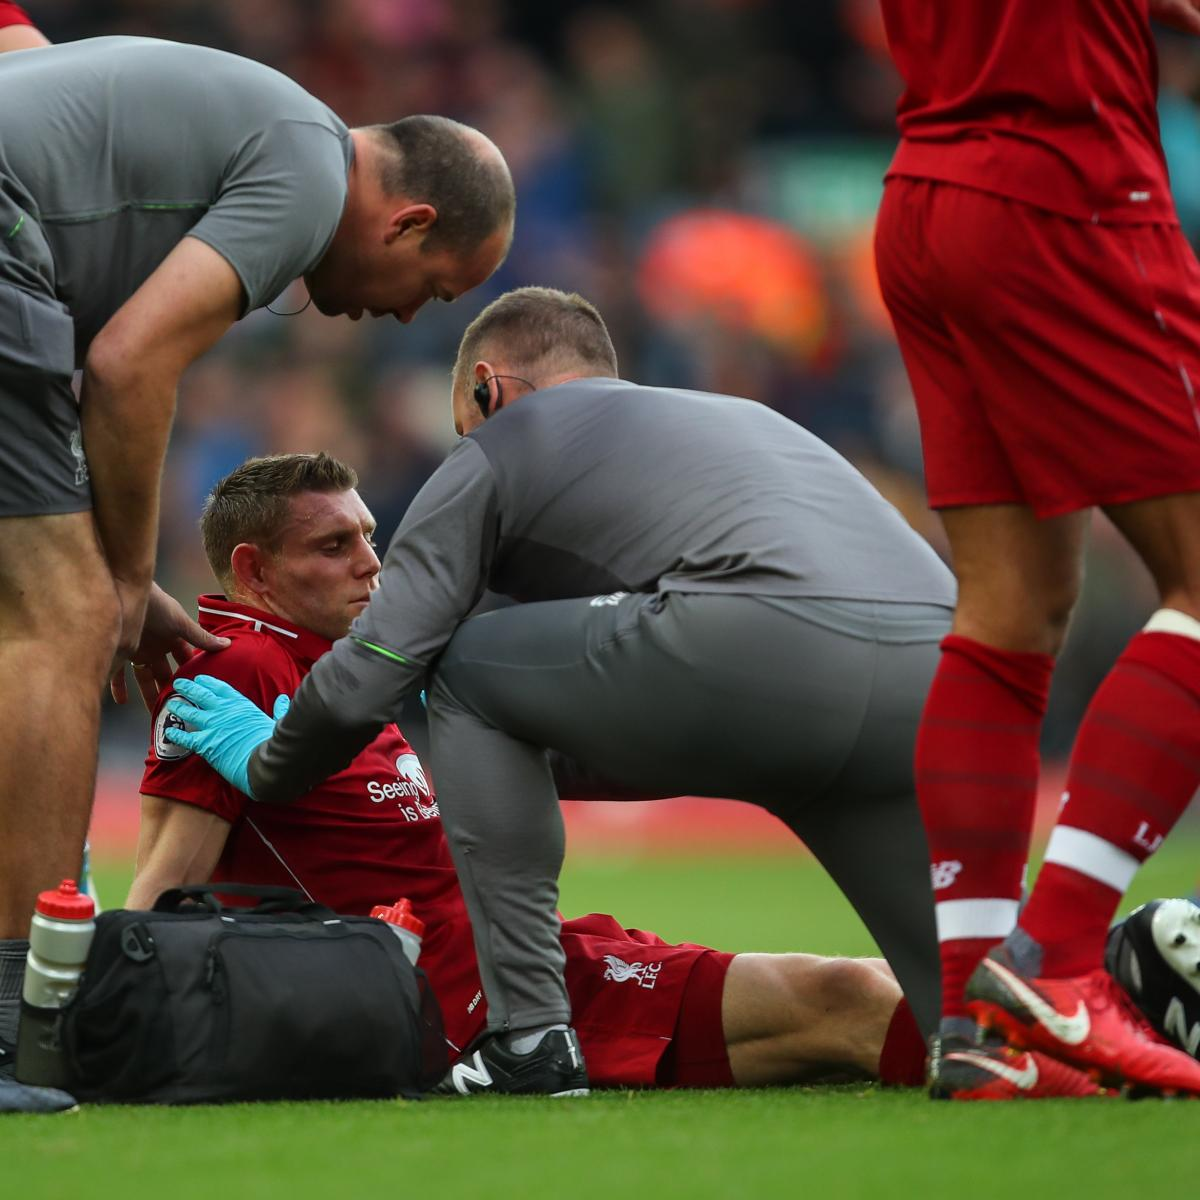 Liverpool's James Milner Reportedly Set for Month out with Hamstring Injury